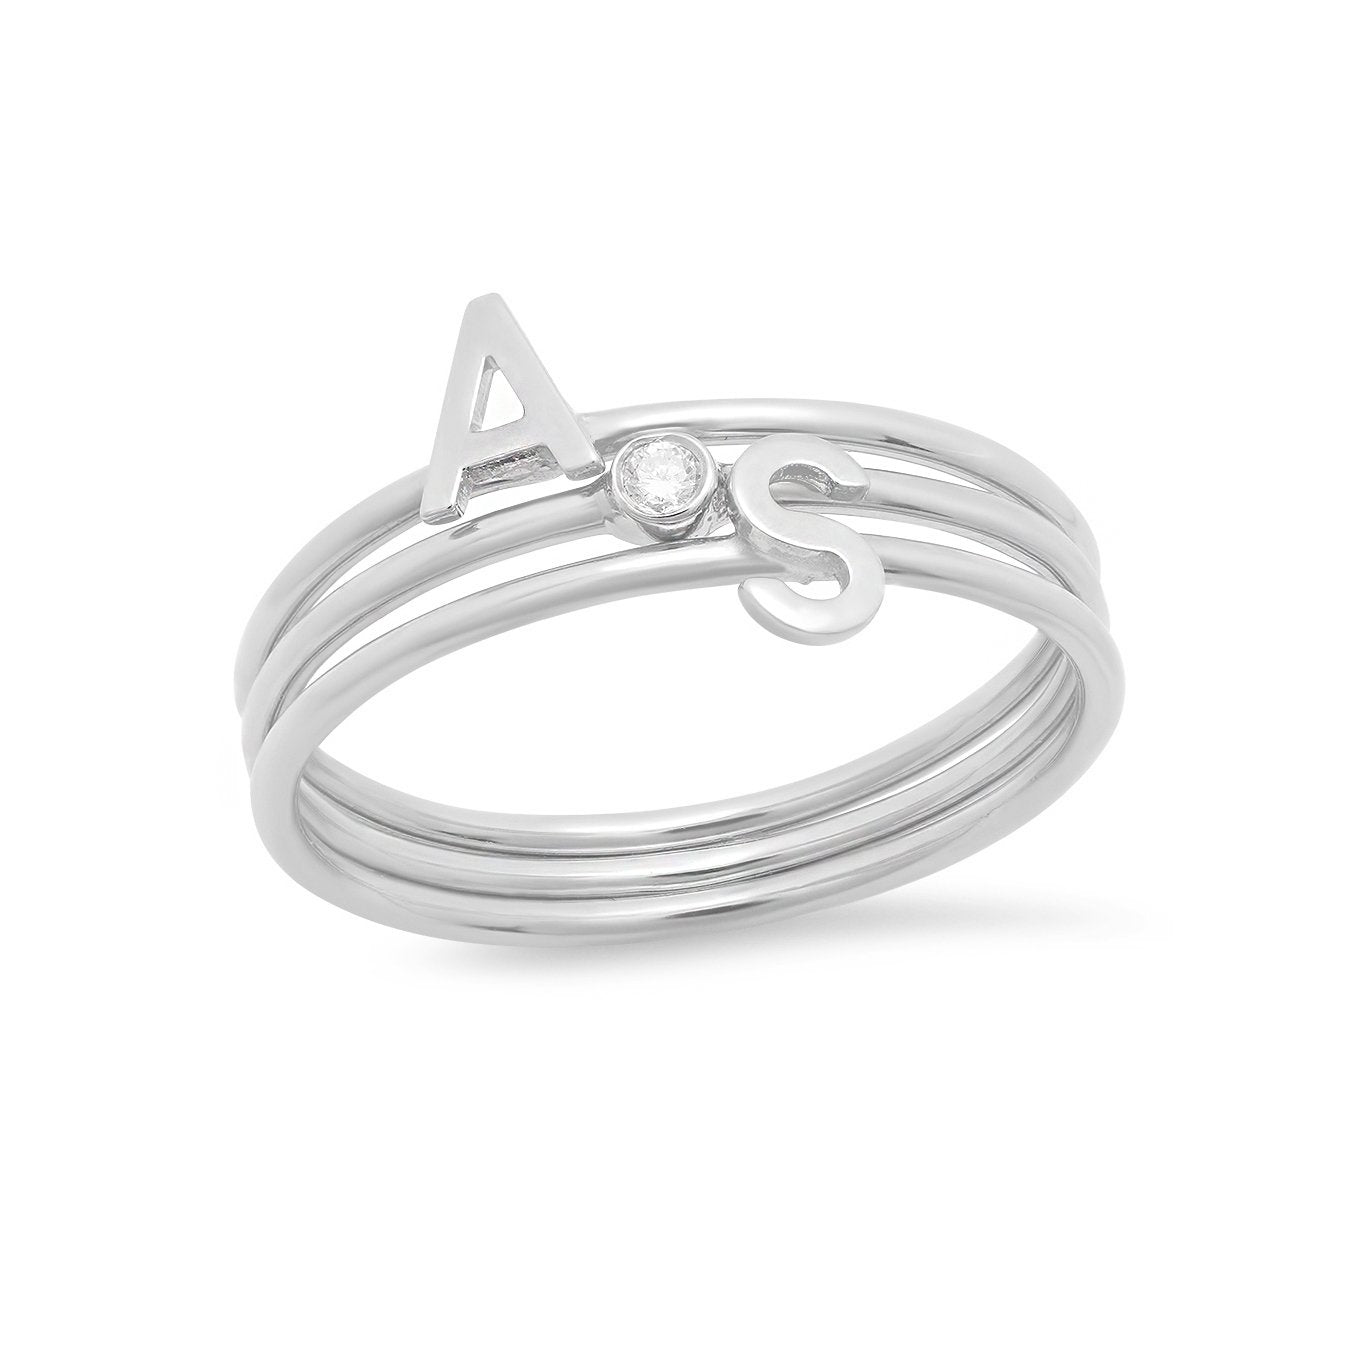 2 Initial and Lili Ring Set